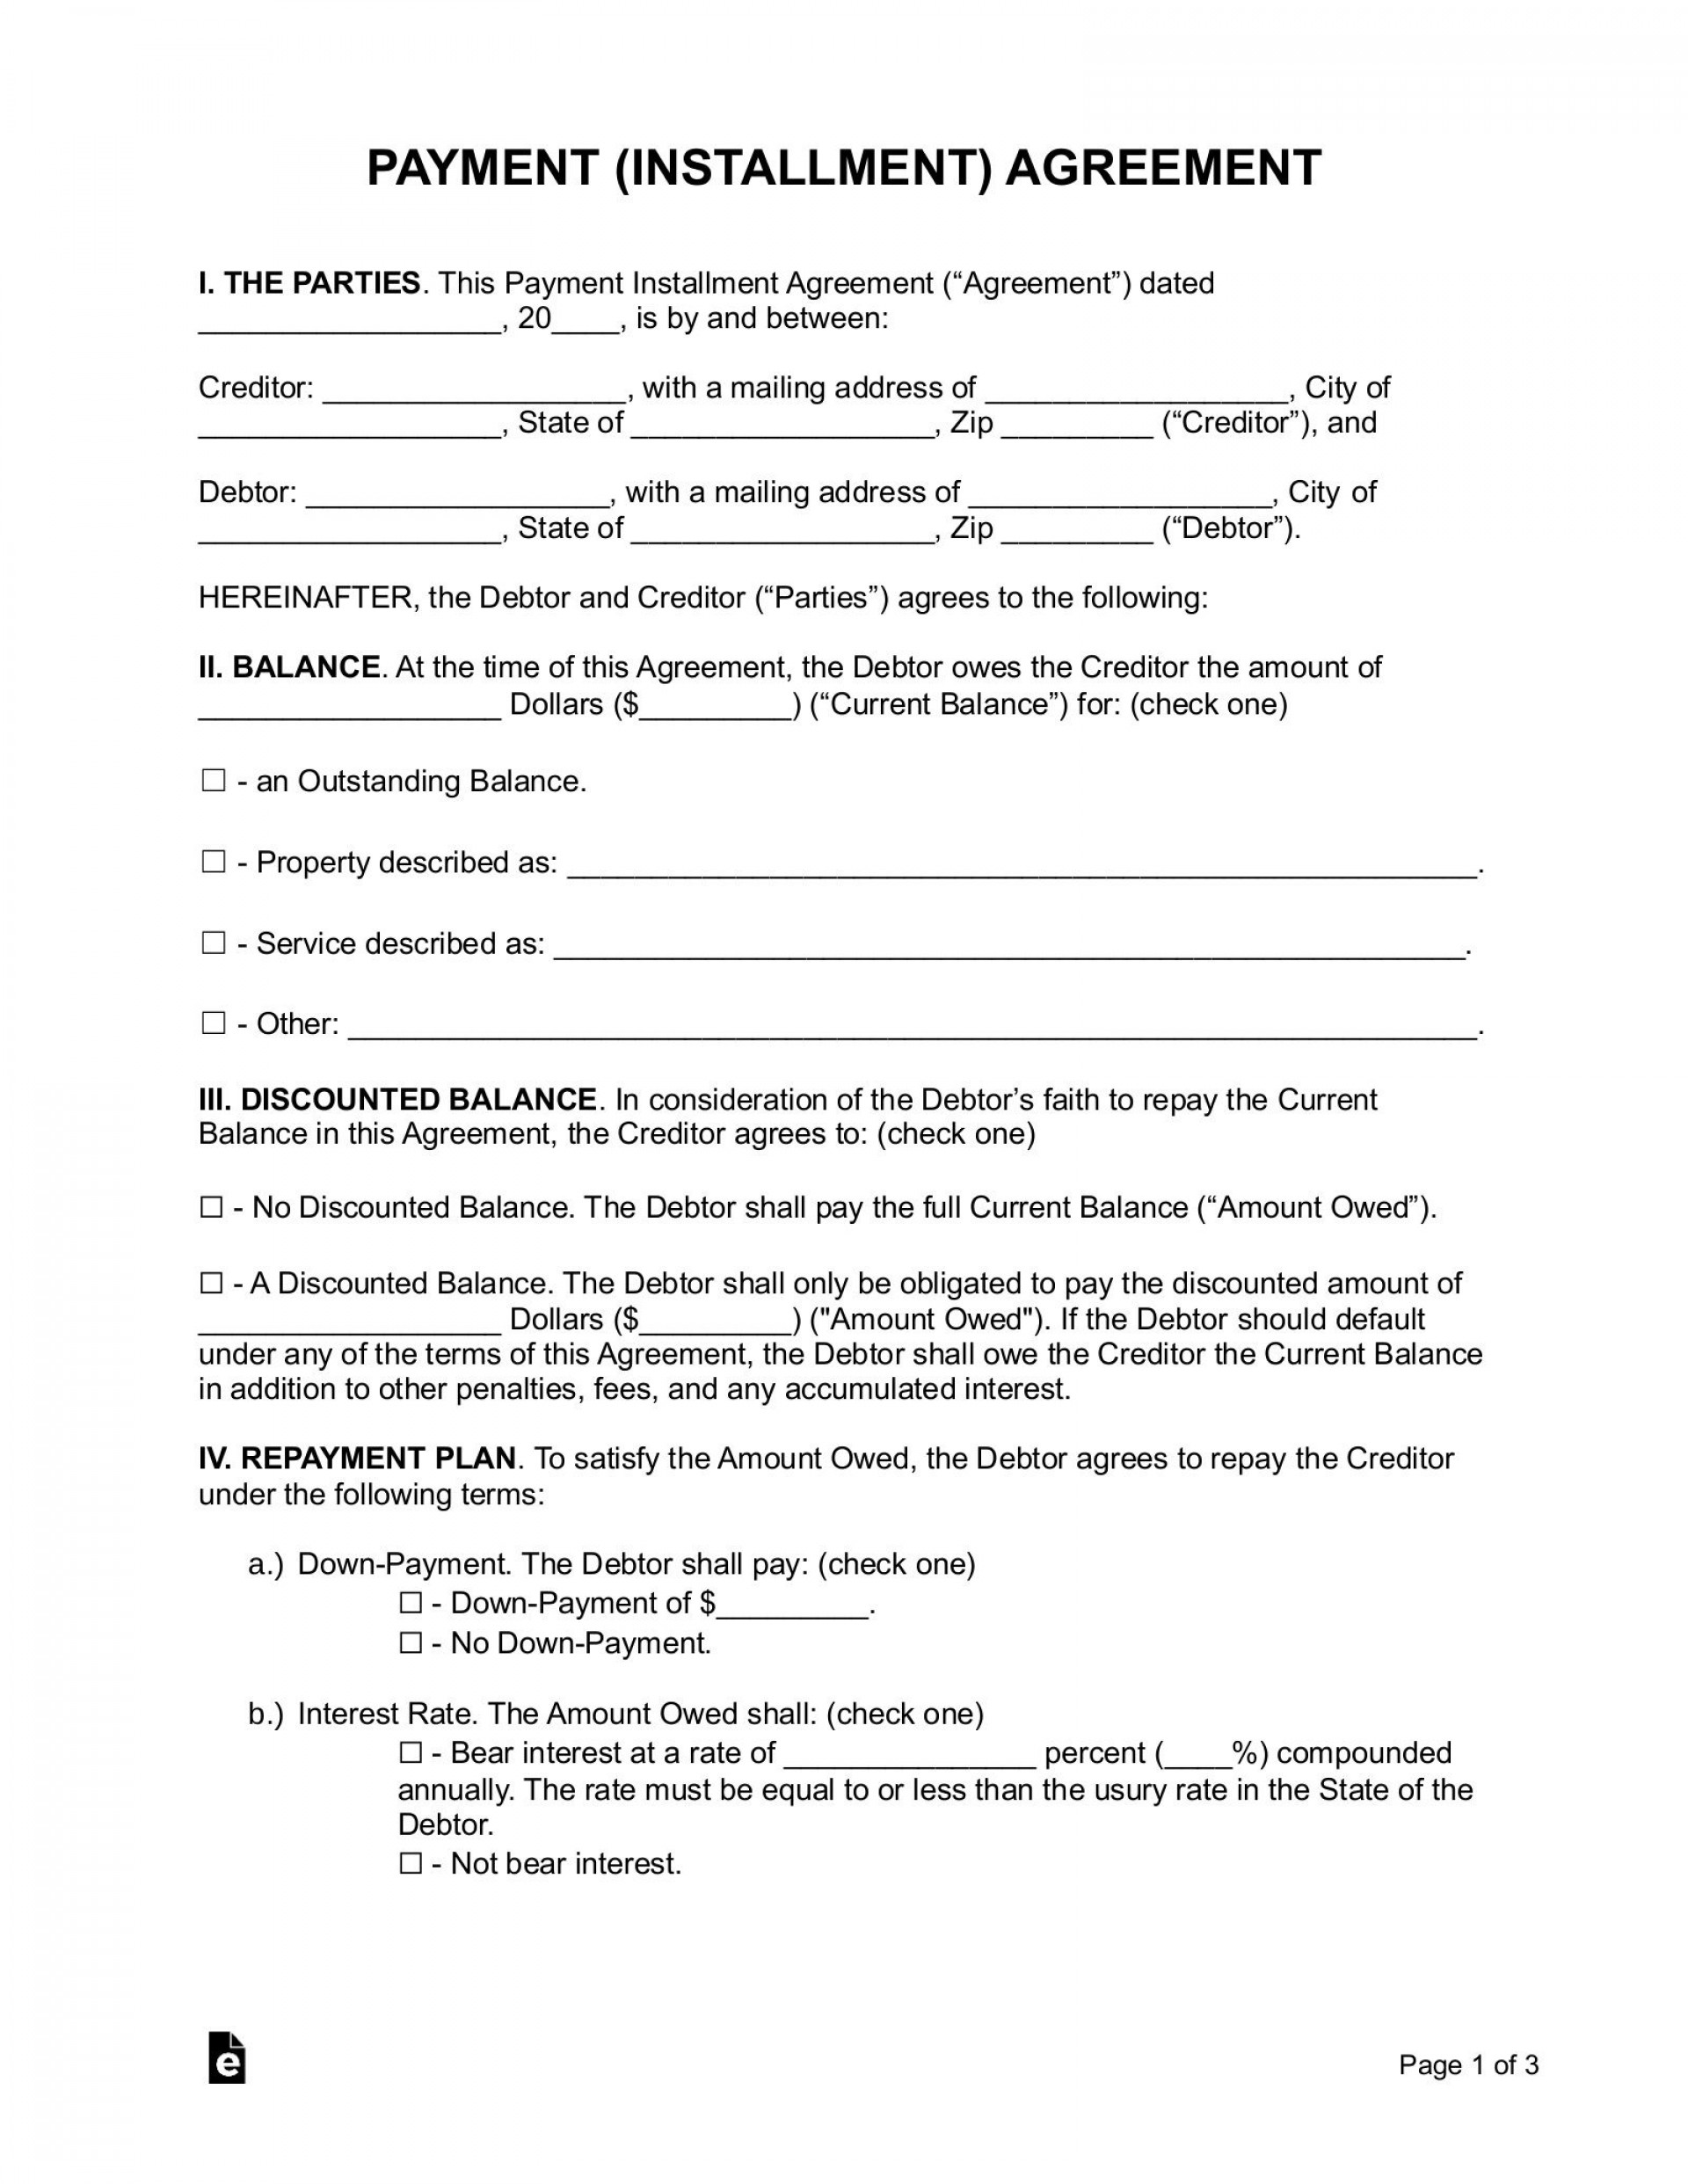 008 Archaicawful Installment Payment Contract Template High Definition  Agreement Free Car Word1920